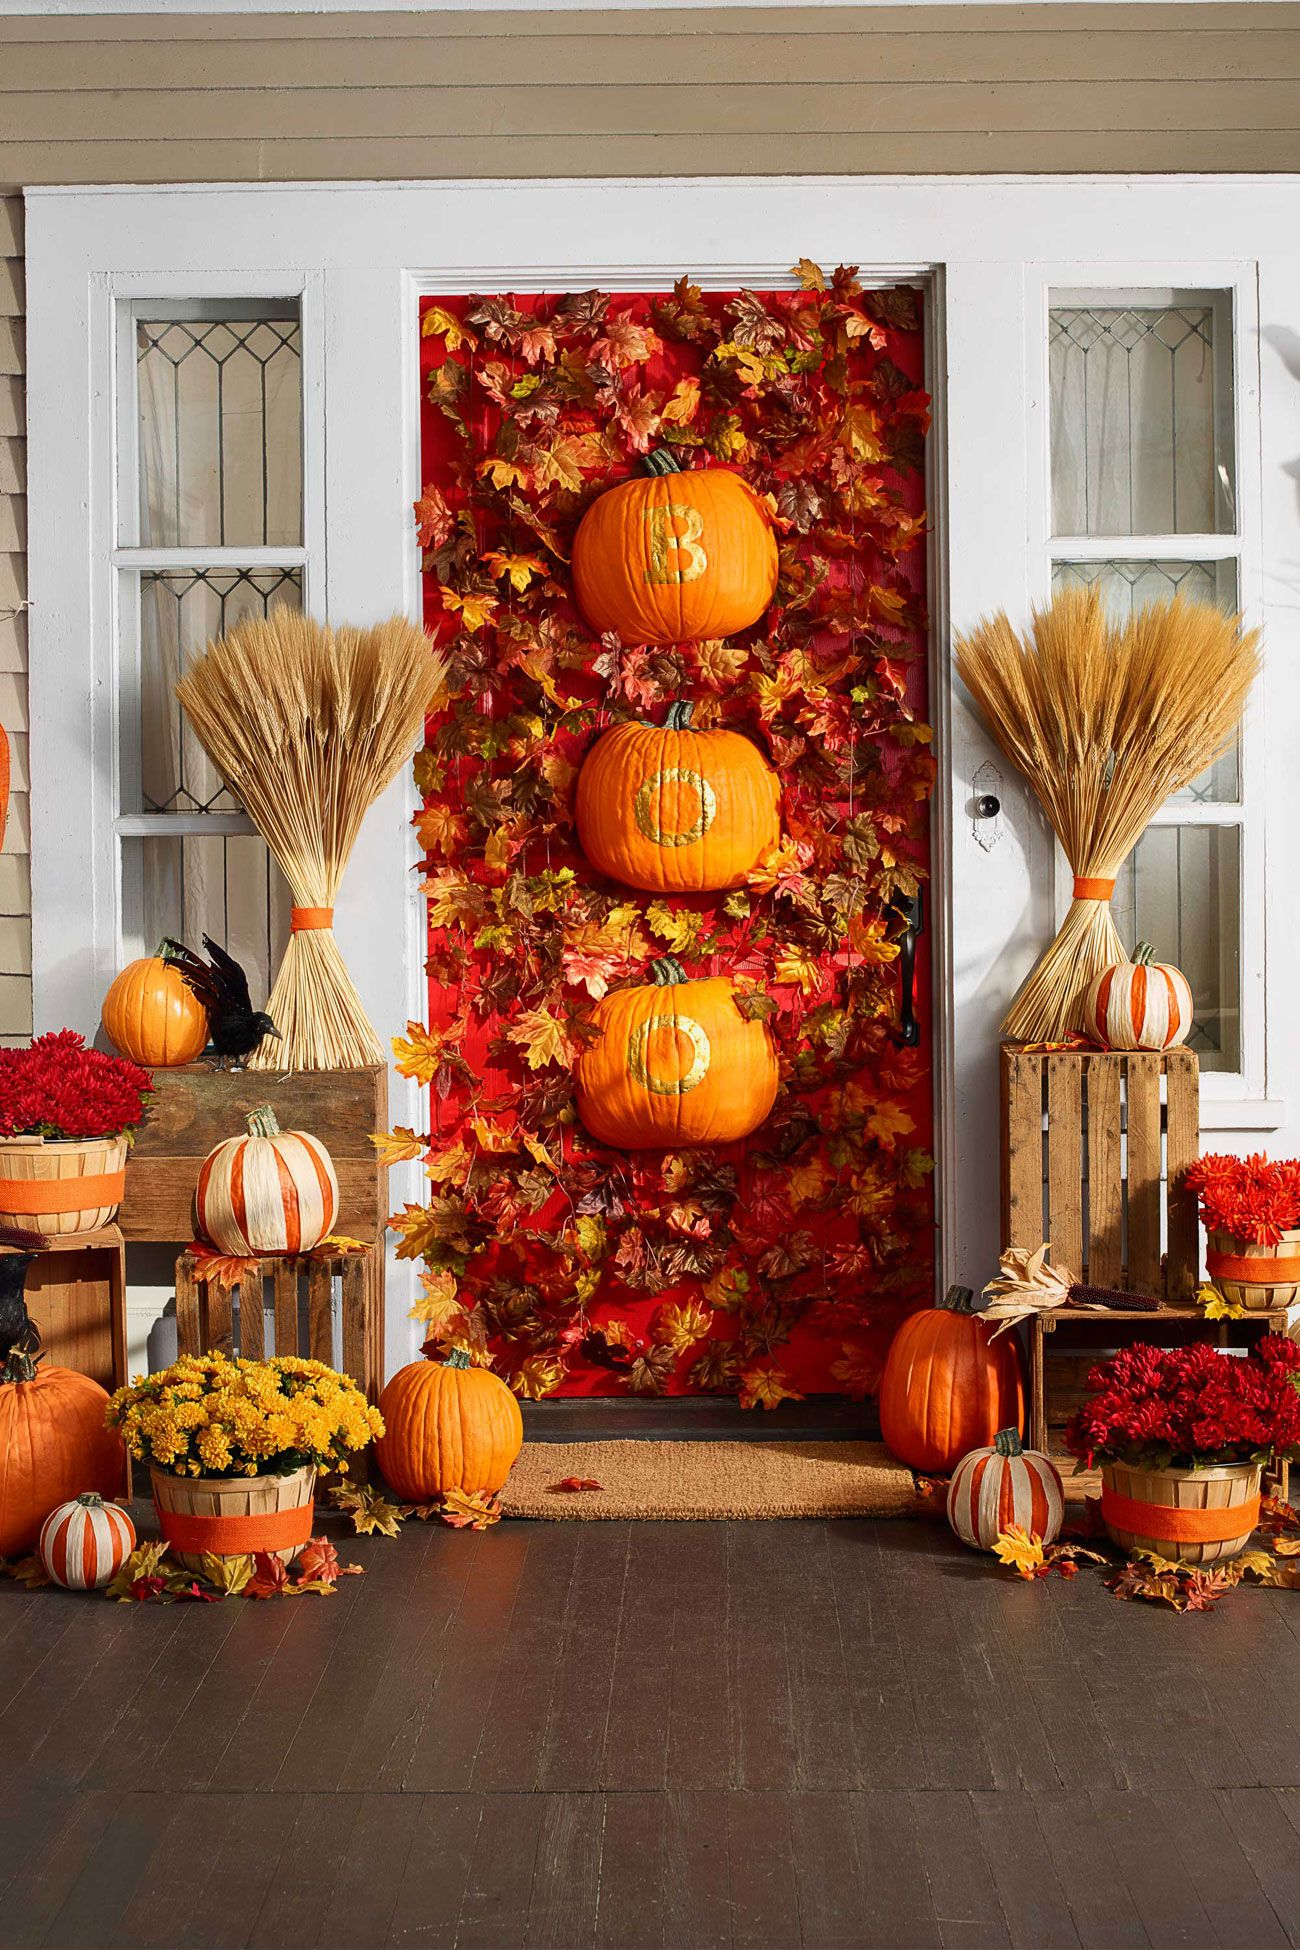 15 Fall Decorating Ideas That'll Get You Ready for the